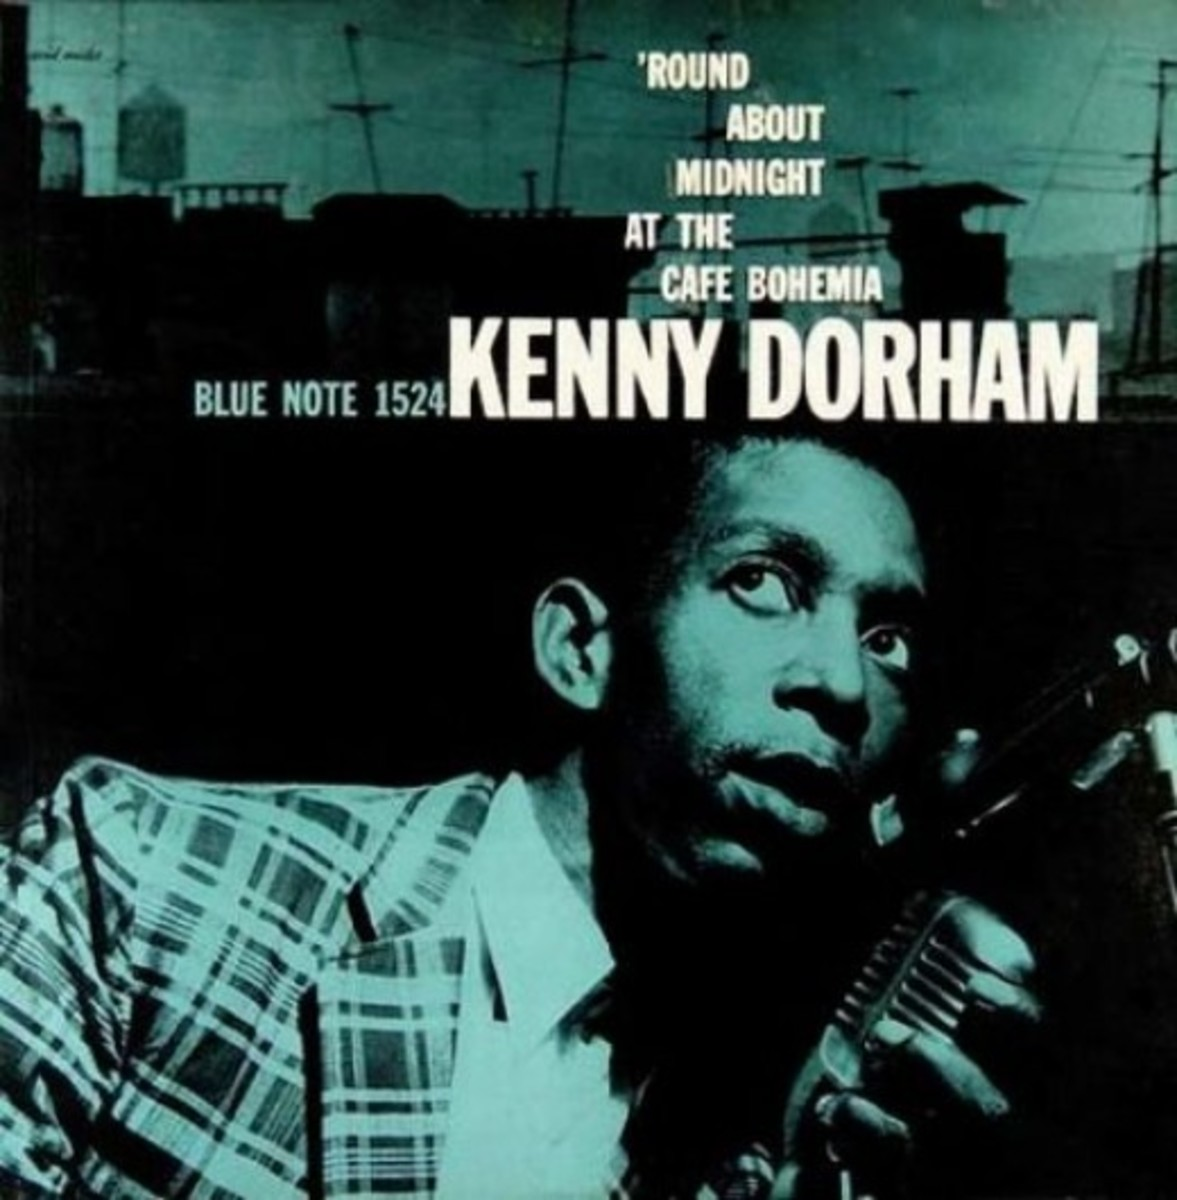 "Kenny Dorham ""Round About Midnight"" Blue Note Records 1524 LP Vinyl Record (1956) Album Cover Art Design by Reid Miles, Photo by Francis Wol"